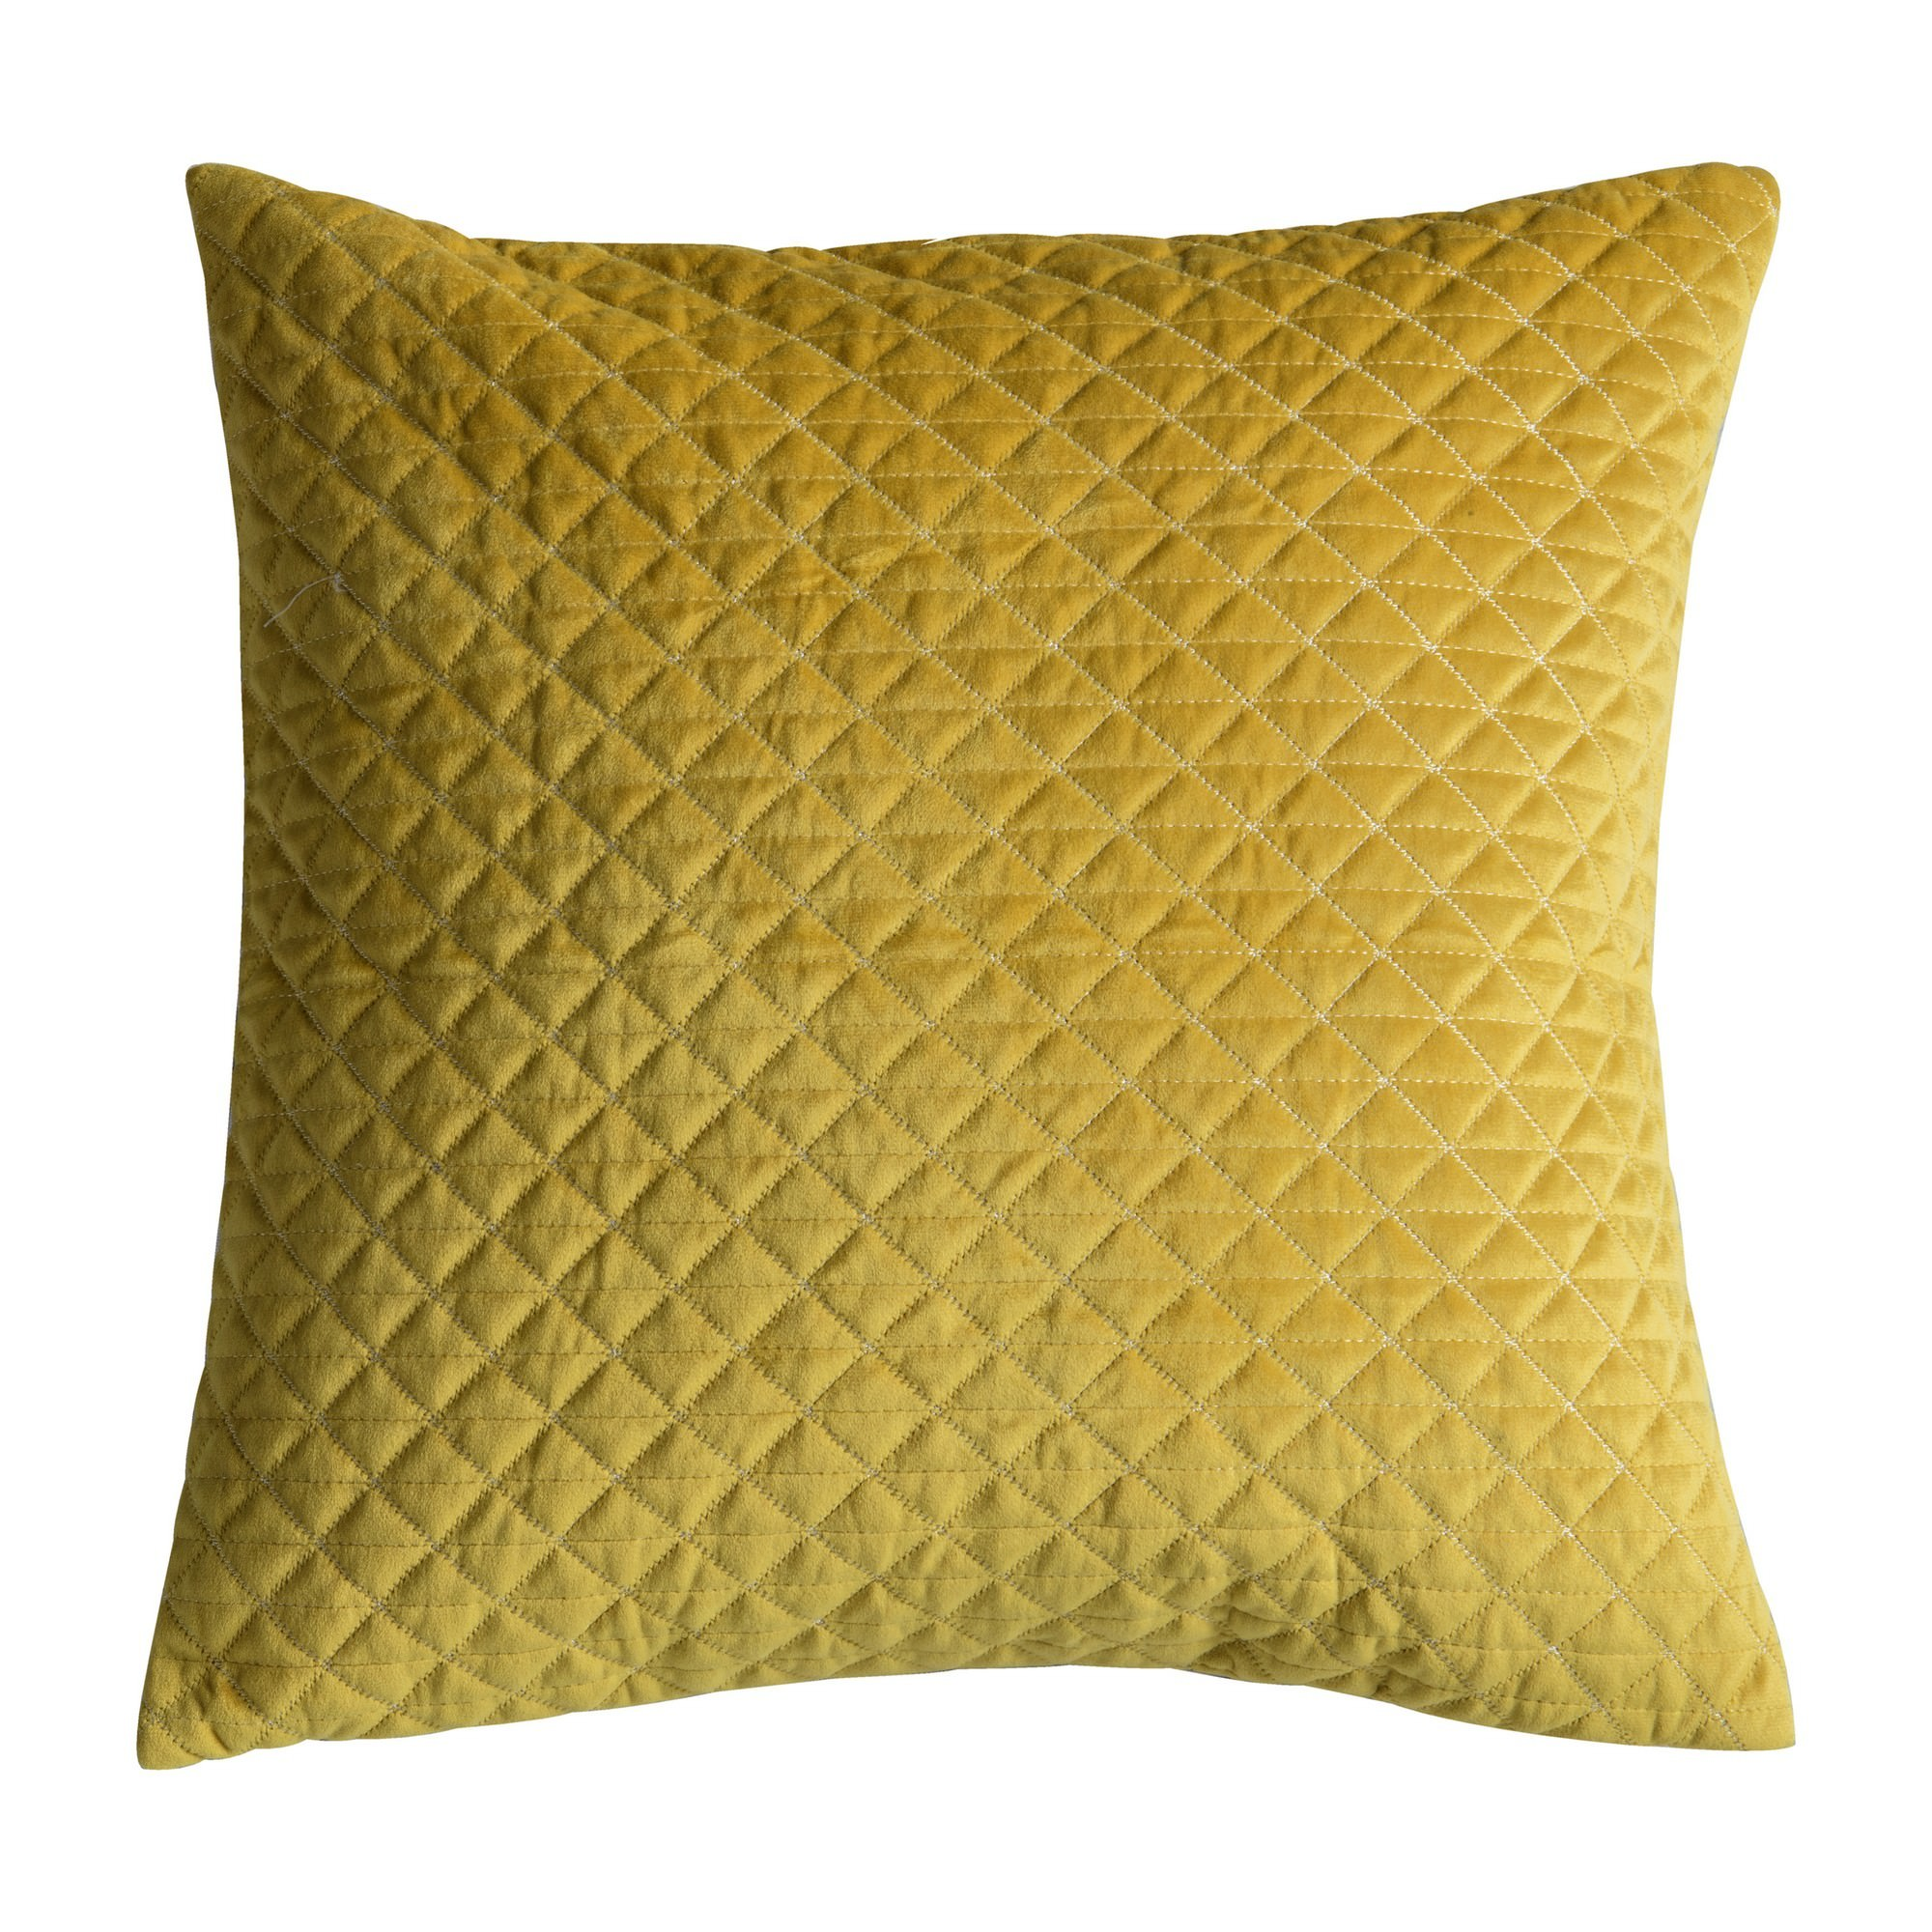 Javier Quilted Feather Filled Scatter Cushion, Ochre